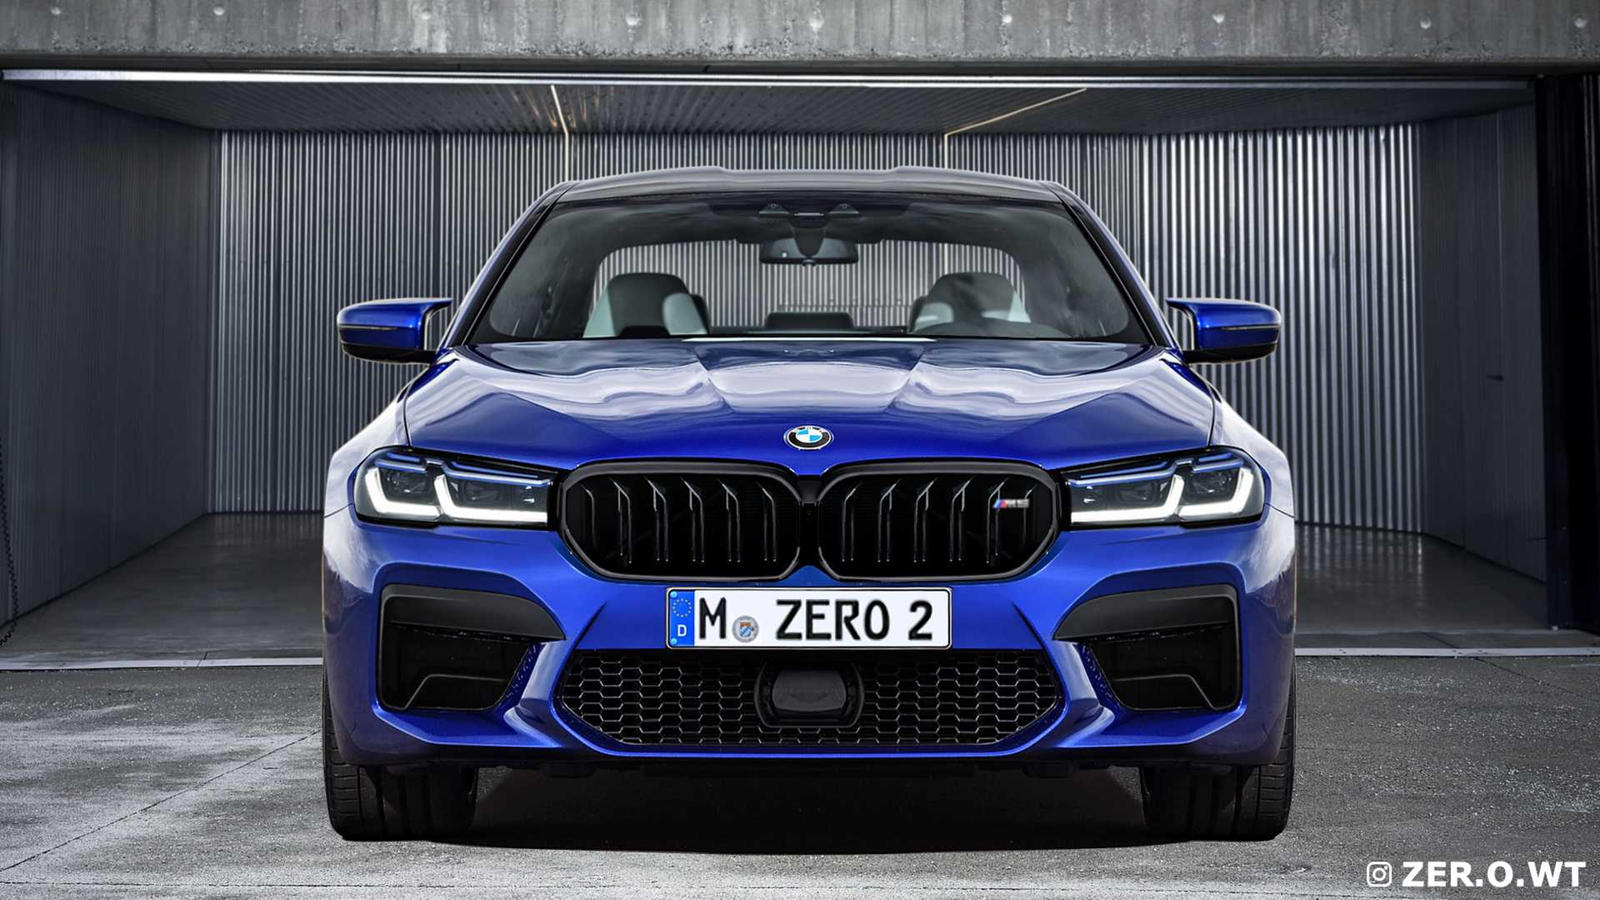 2021 Bmw M5 Facelift Best Look Yet At New Super Sedan Carbuzz